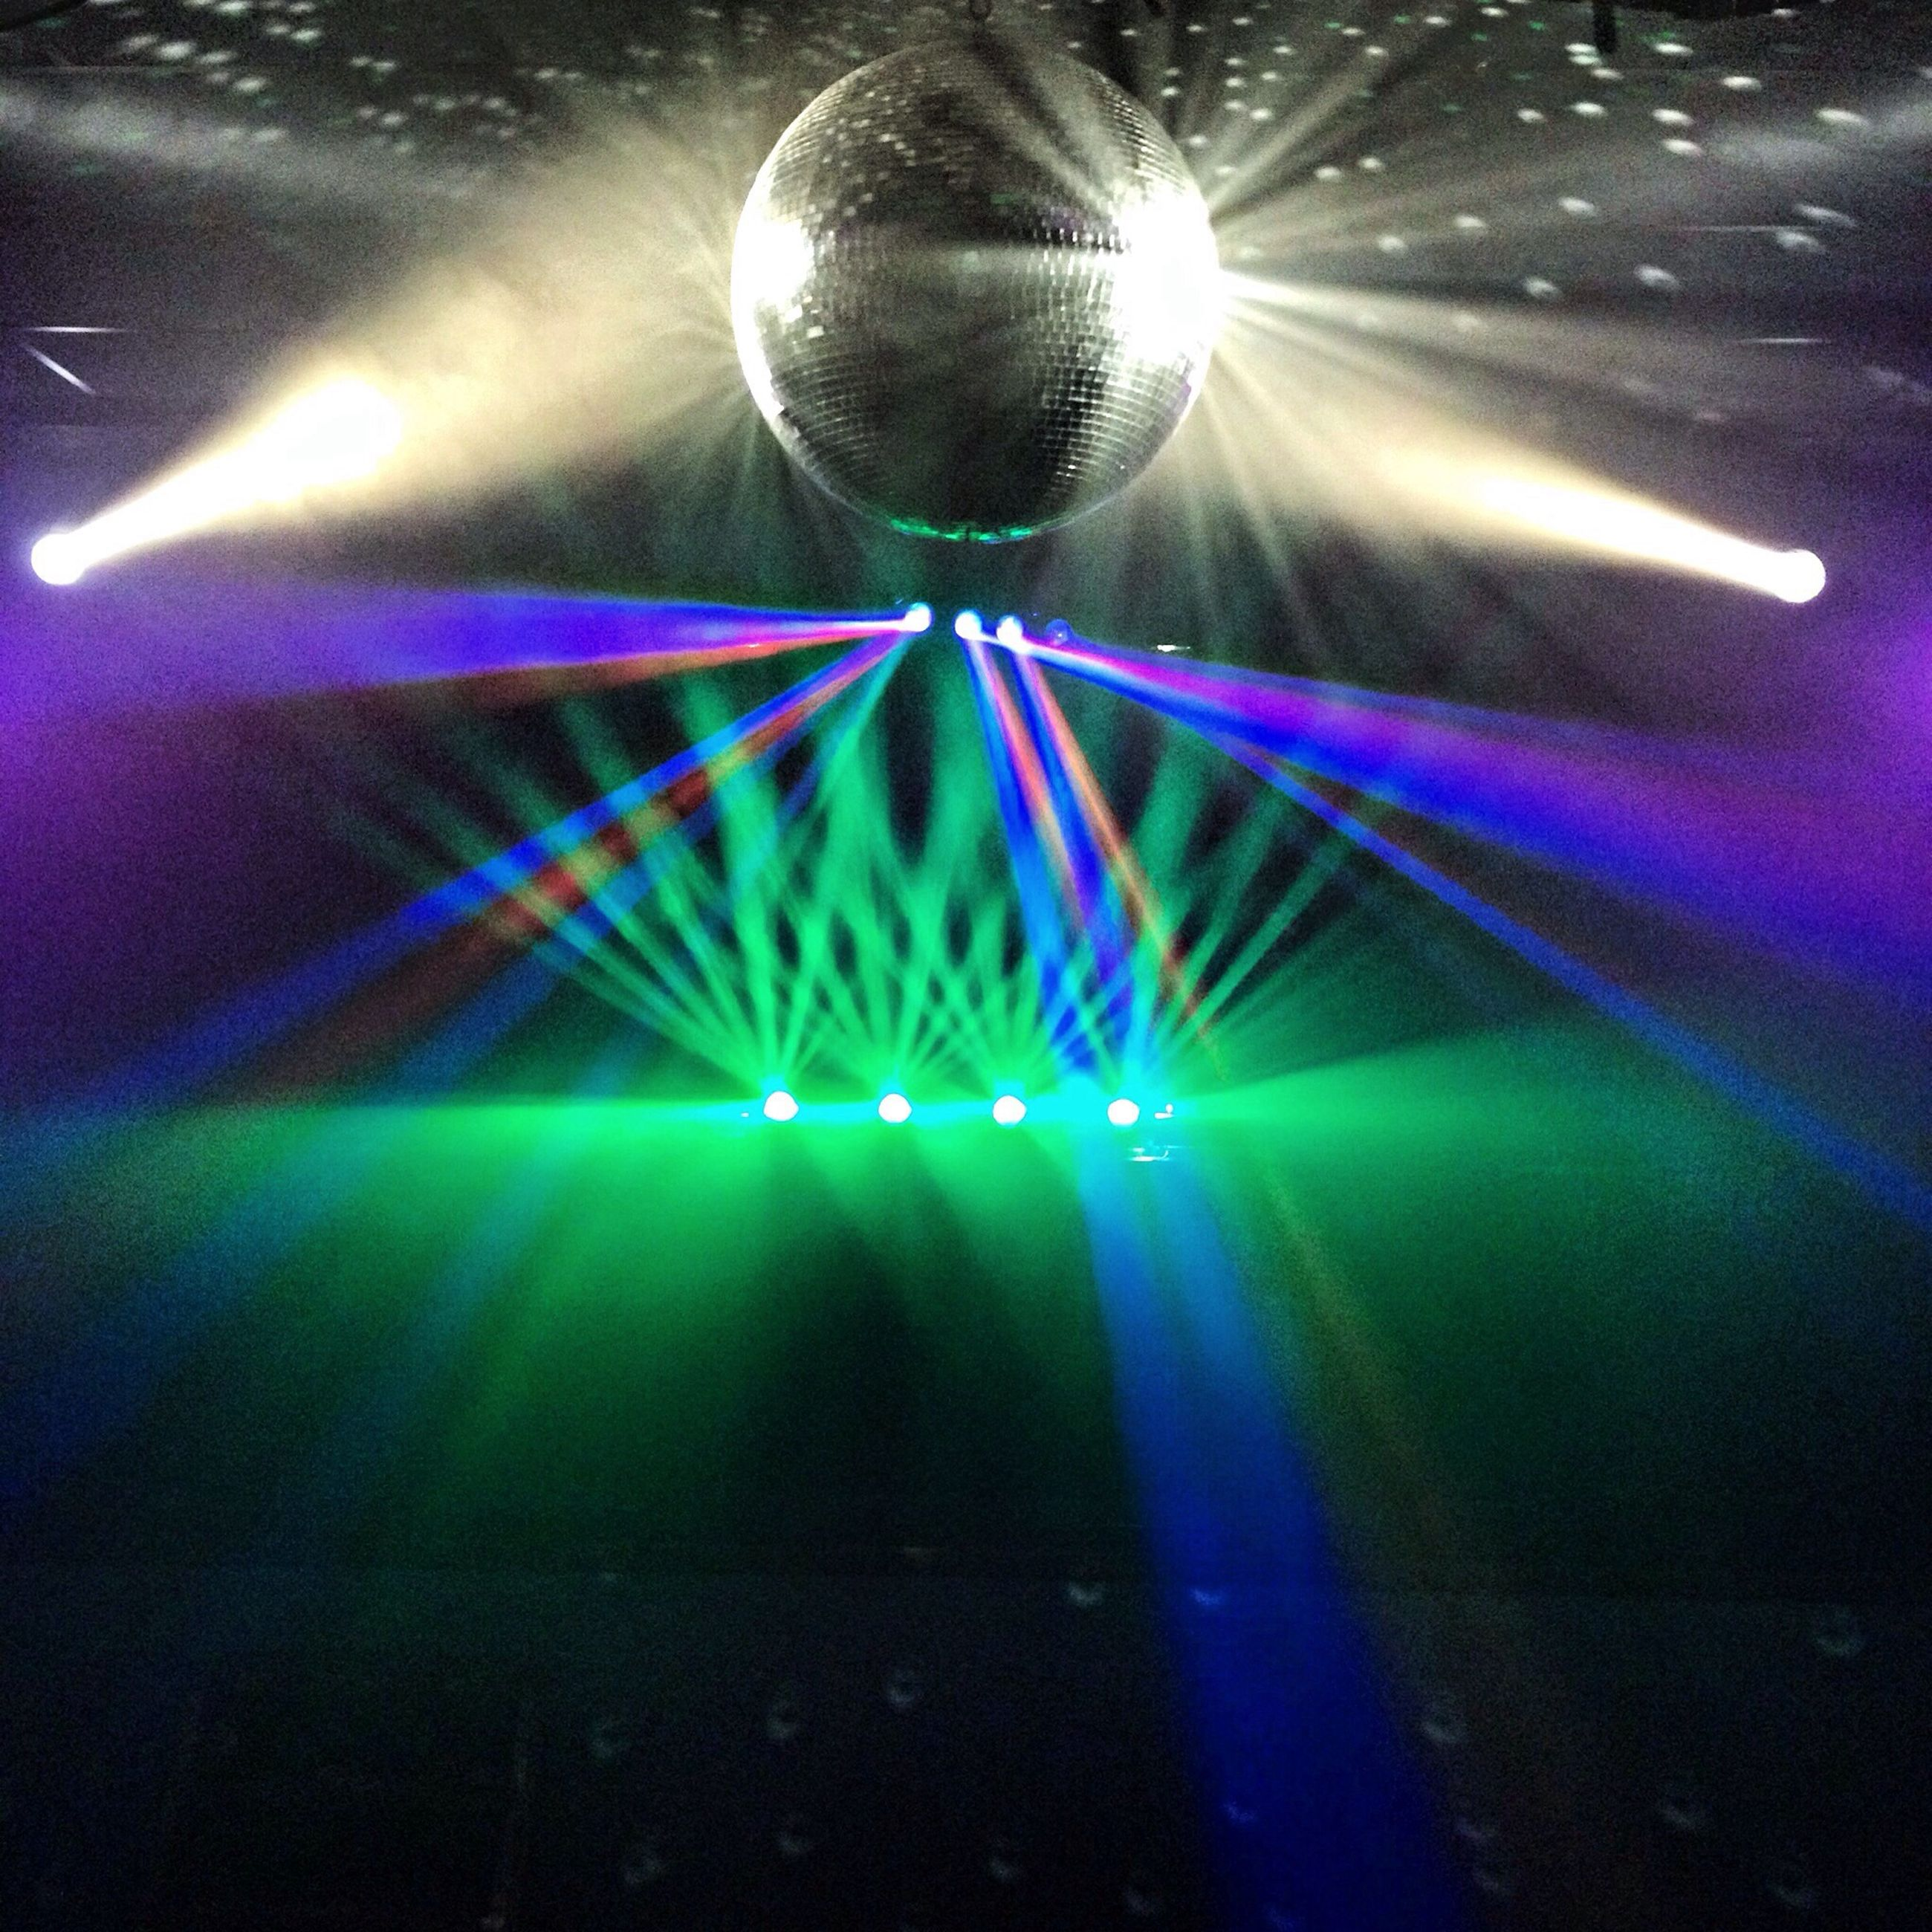 illuminated, lighting equipment, night, glowing, indoors, electricity, light - natural phenomenon, electric light, low angle view, hanging, light, ceiling, light beam, decoration, multi colored, technology, celebration, no people, nightlife, christmas lights